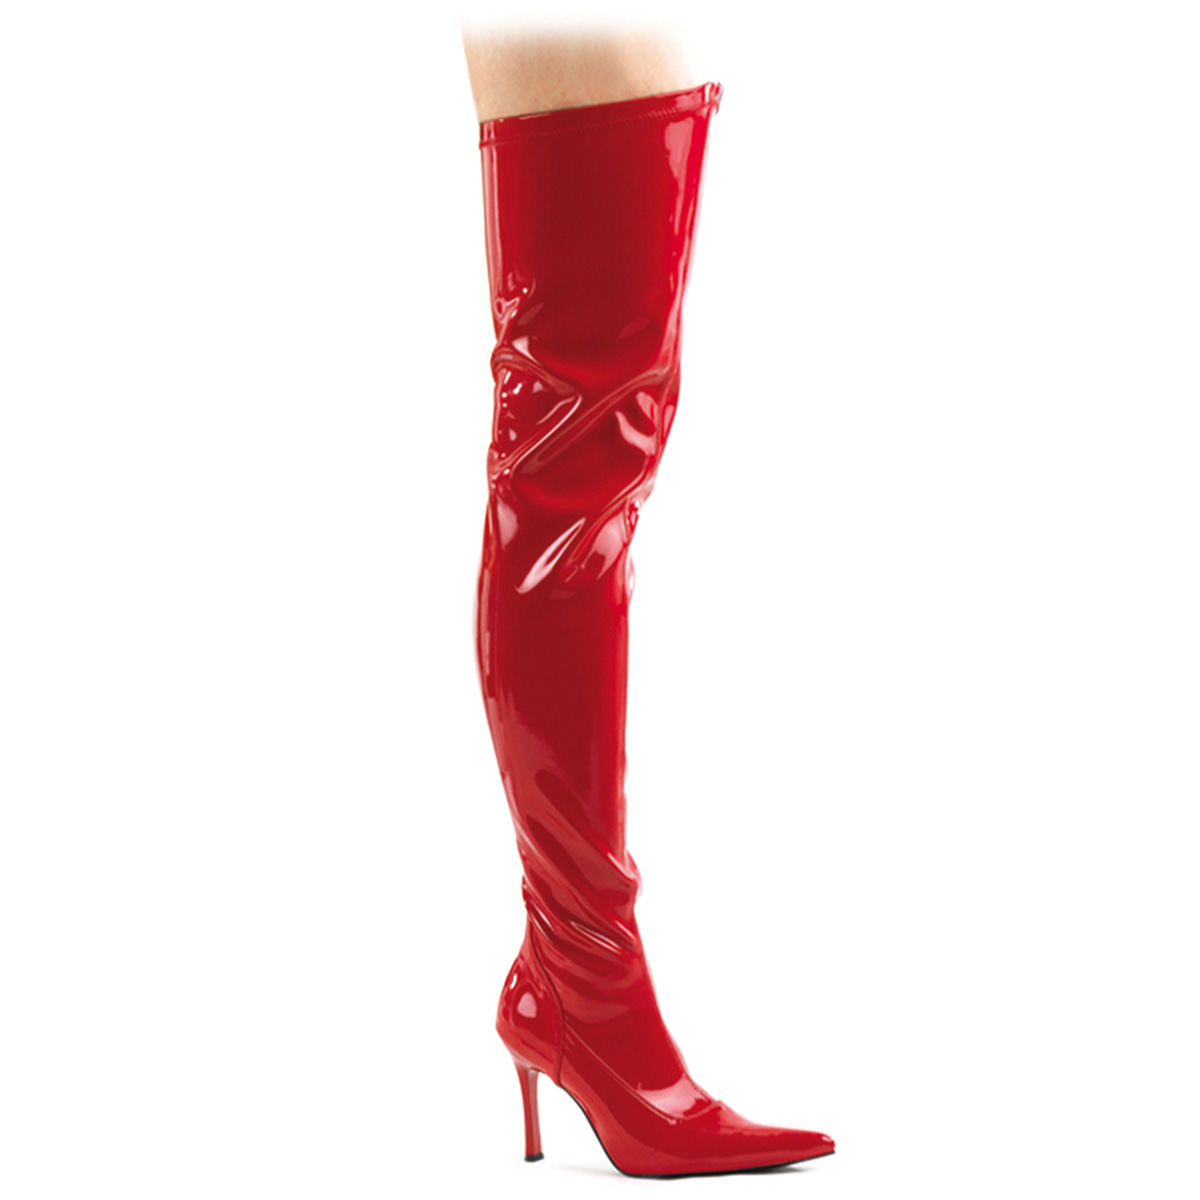 Pleaser Lust-3000 Sexy High Heel Women's Costume Halloween Thigh Boots at Sears.com